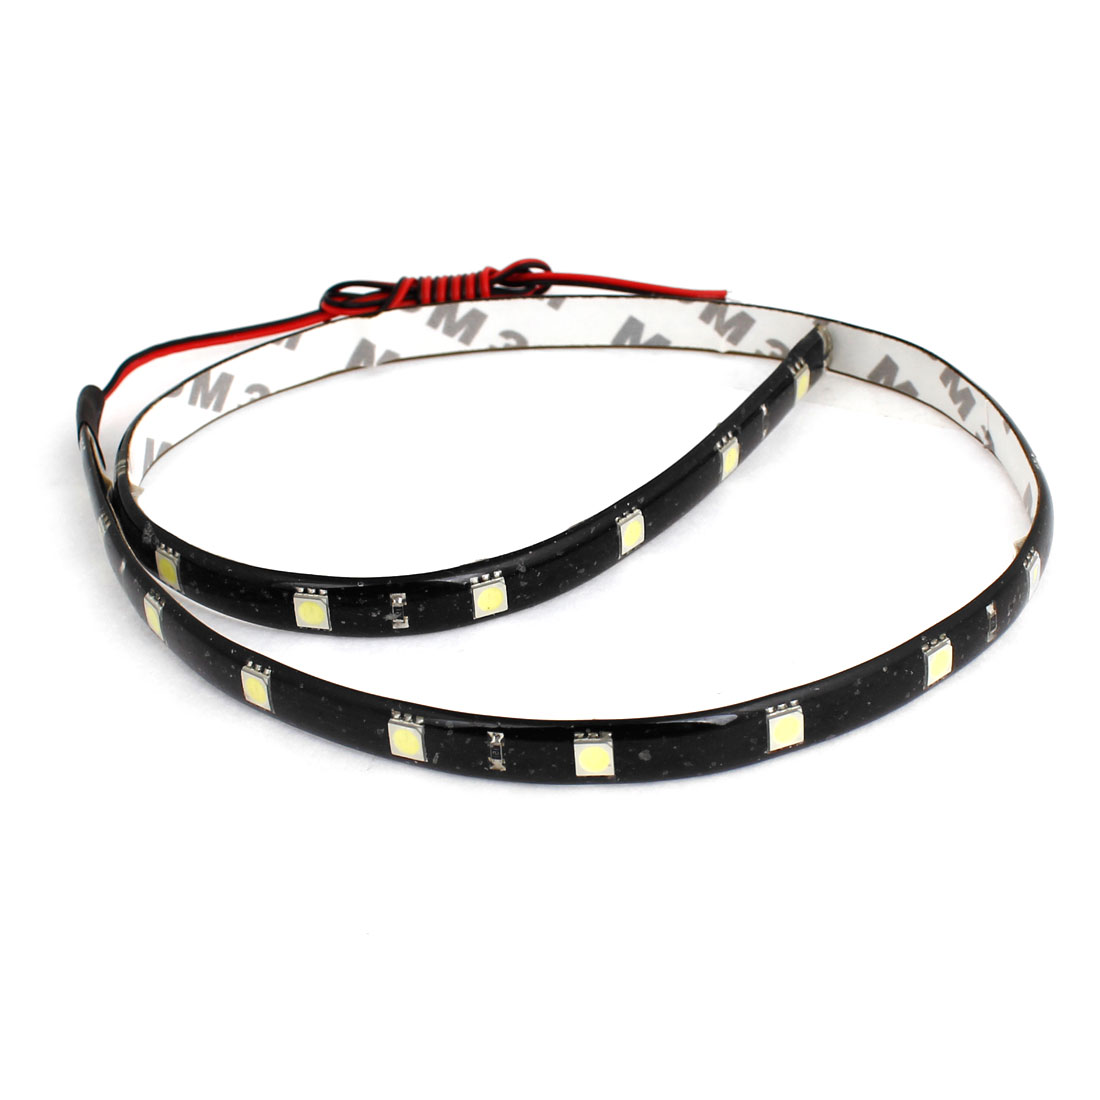 2 Pcs White 24 LED 5050 SMD Lamp String Waterproof Auto Strip Light 60cm